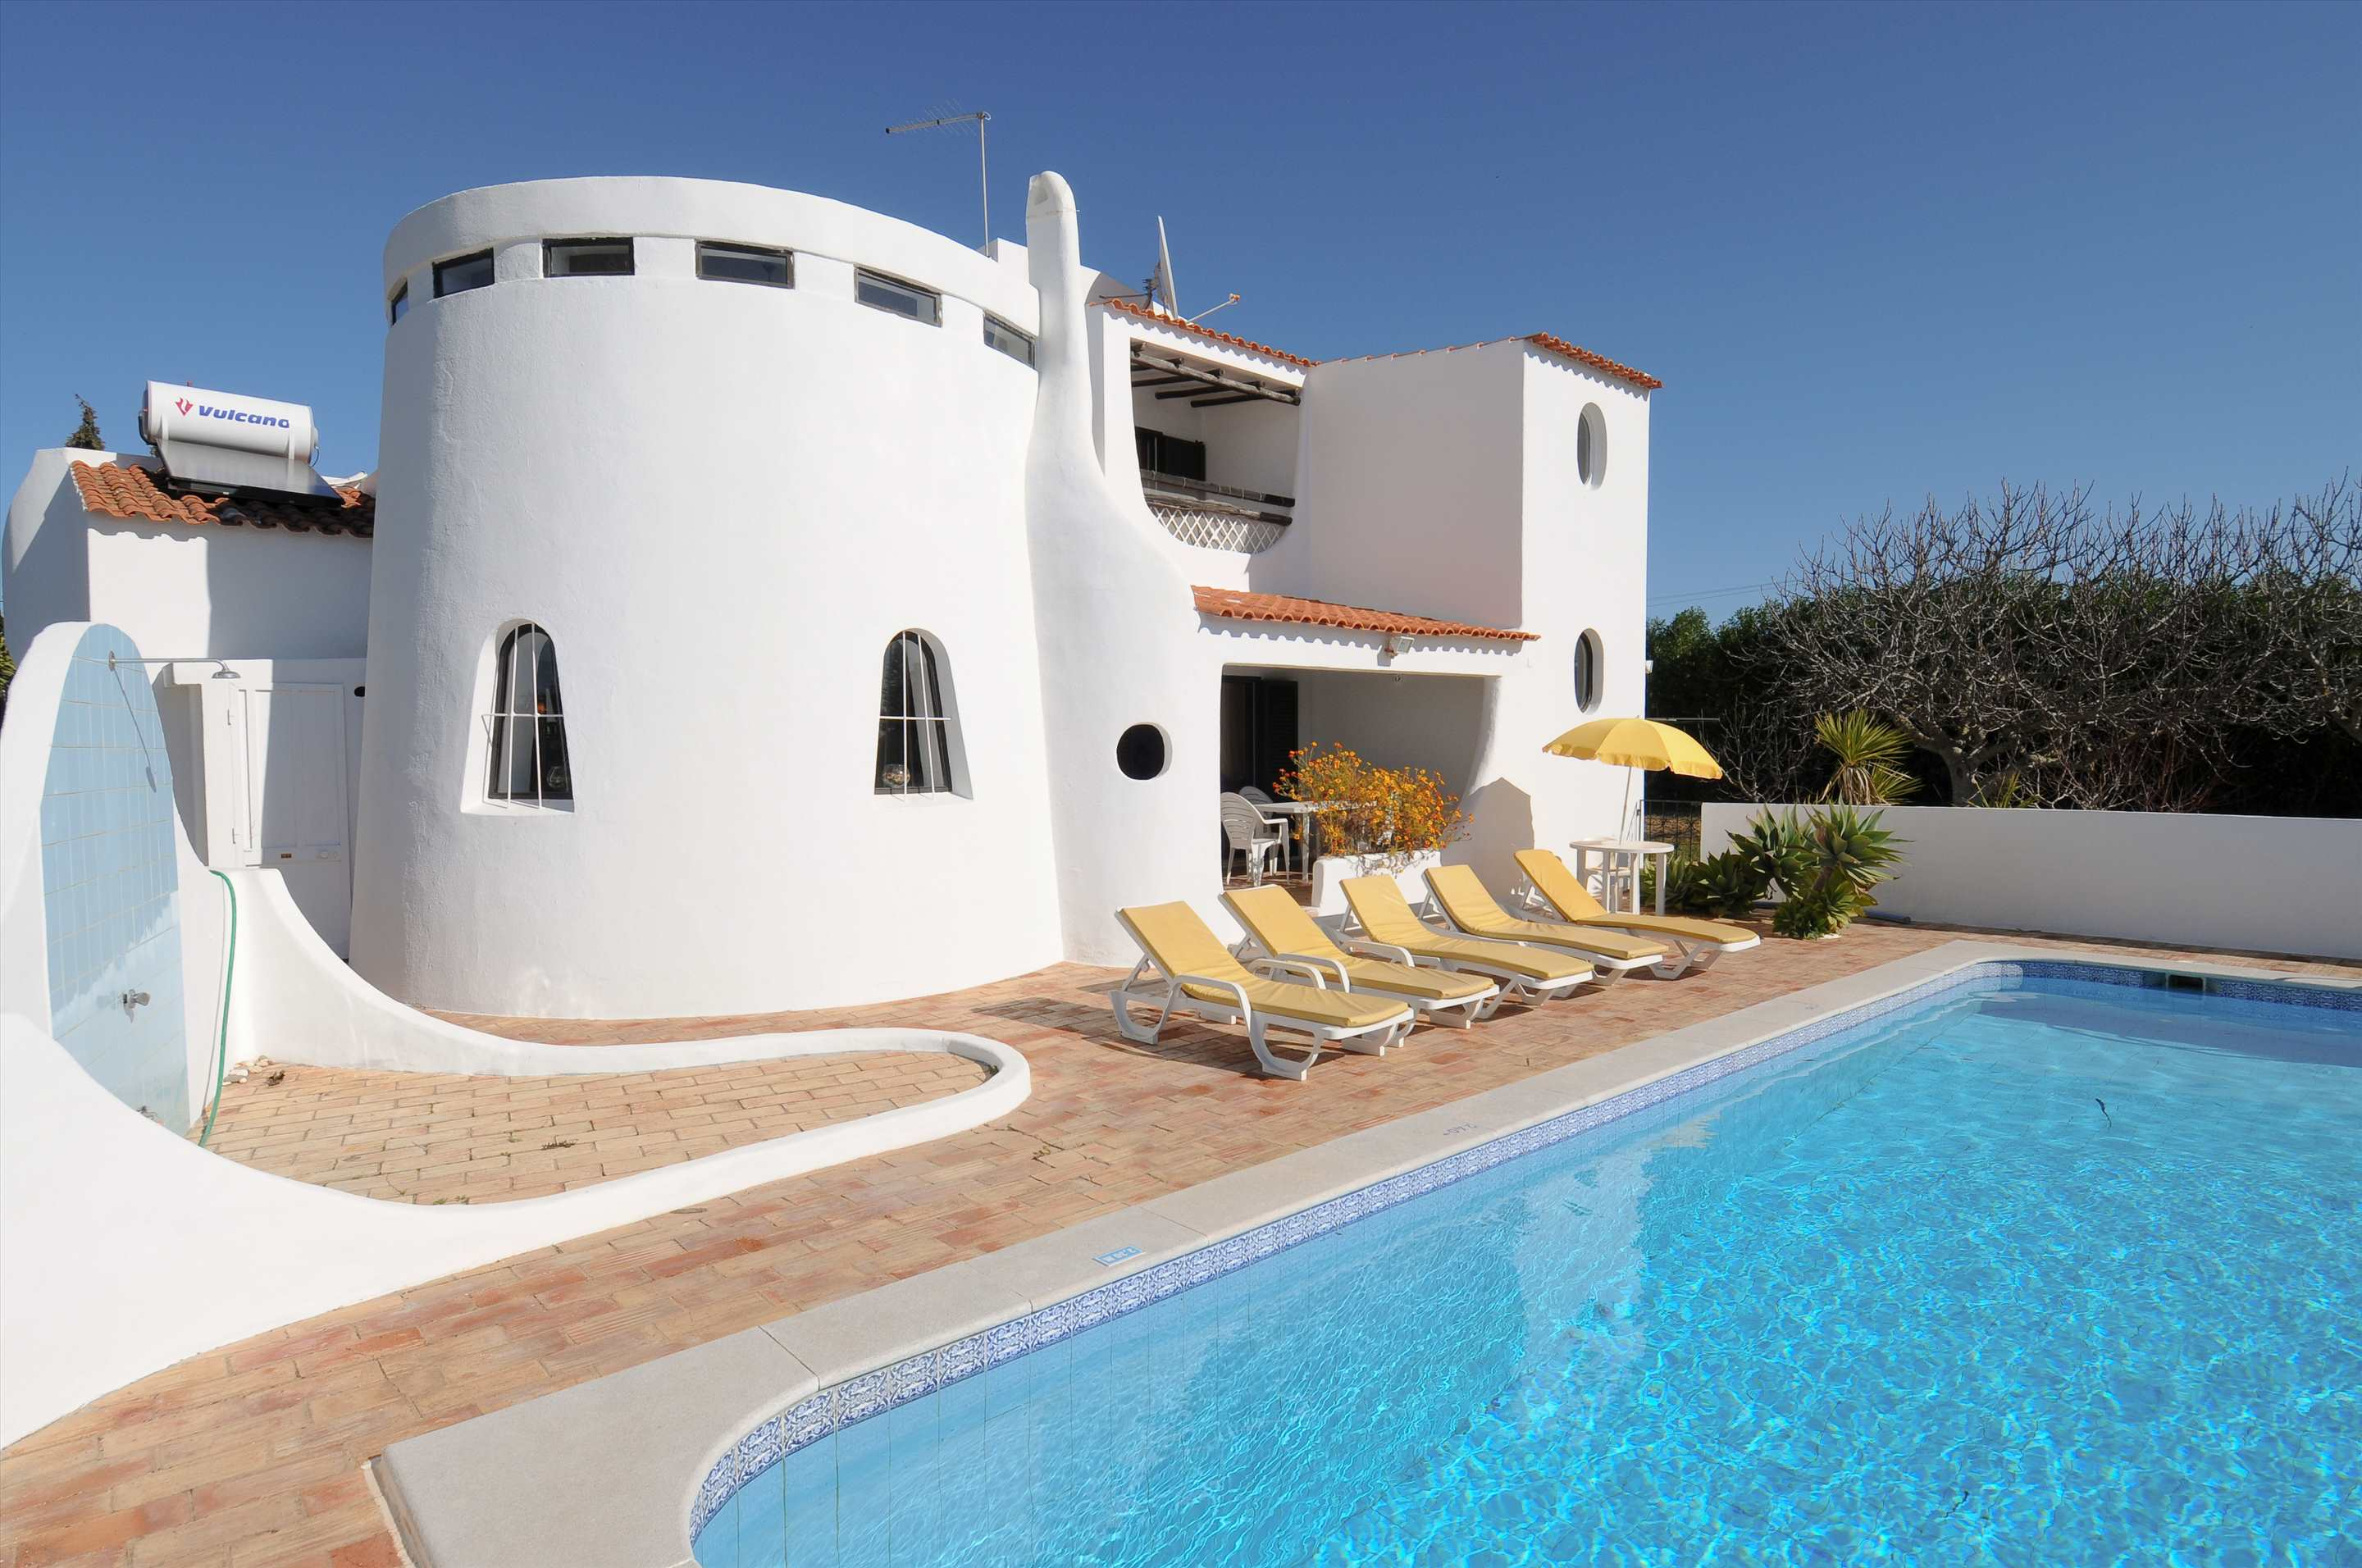 Casa Alexandra, 7-8 persons rate, 4 bedroom villa in Carvoeiro Area, Algarve Photo #1